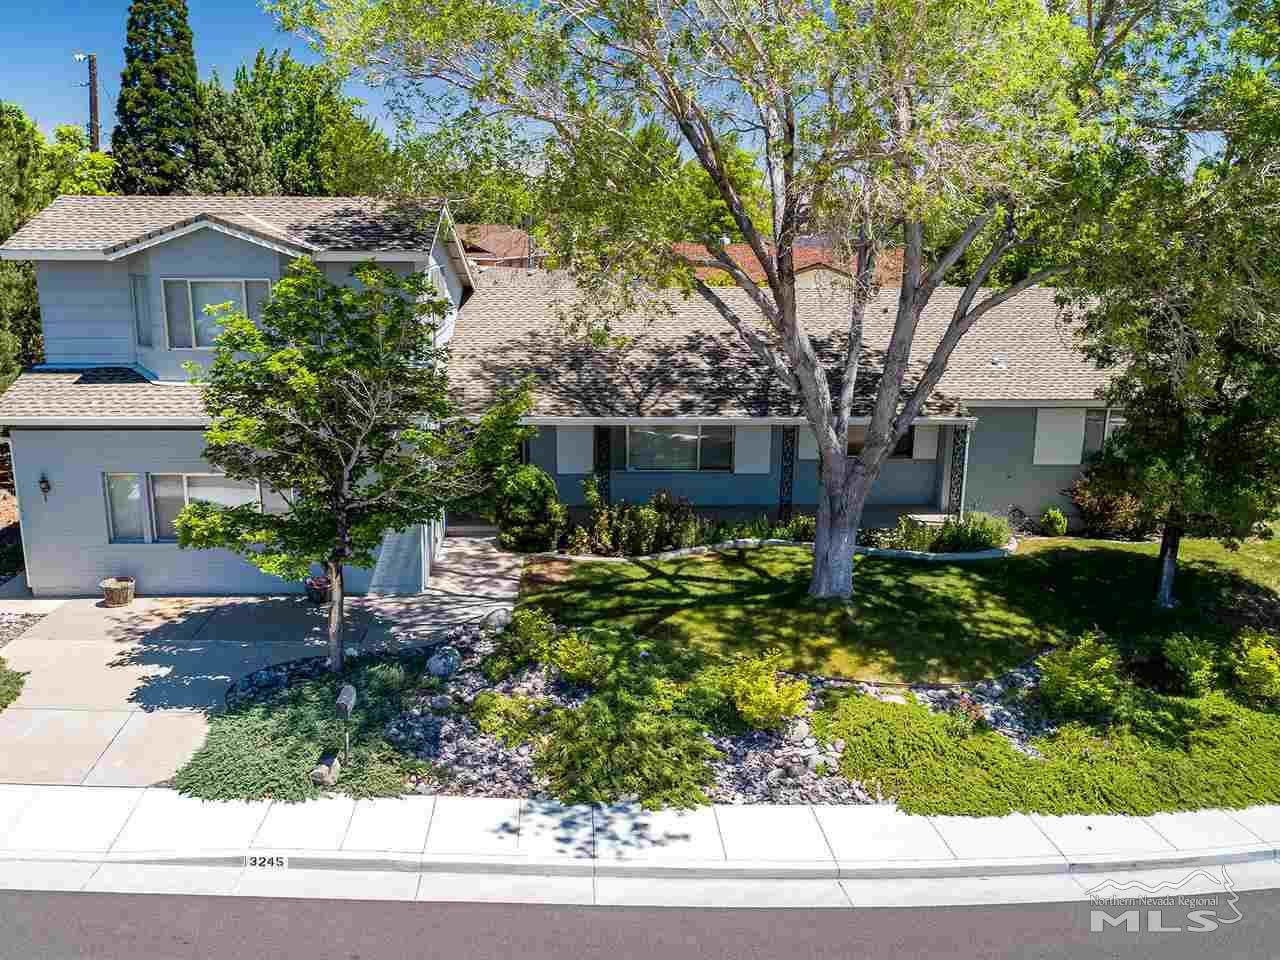 3245 San Mateo Ave. - Photo 1